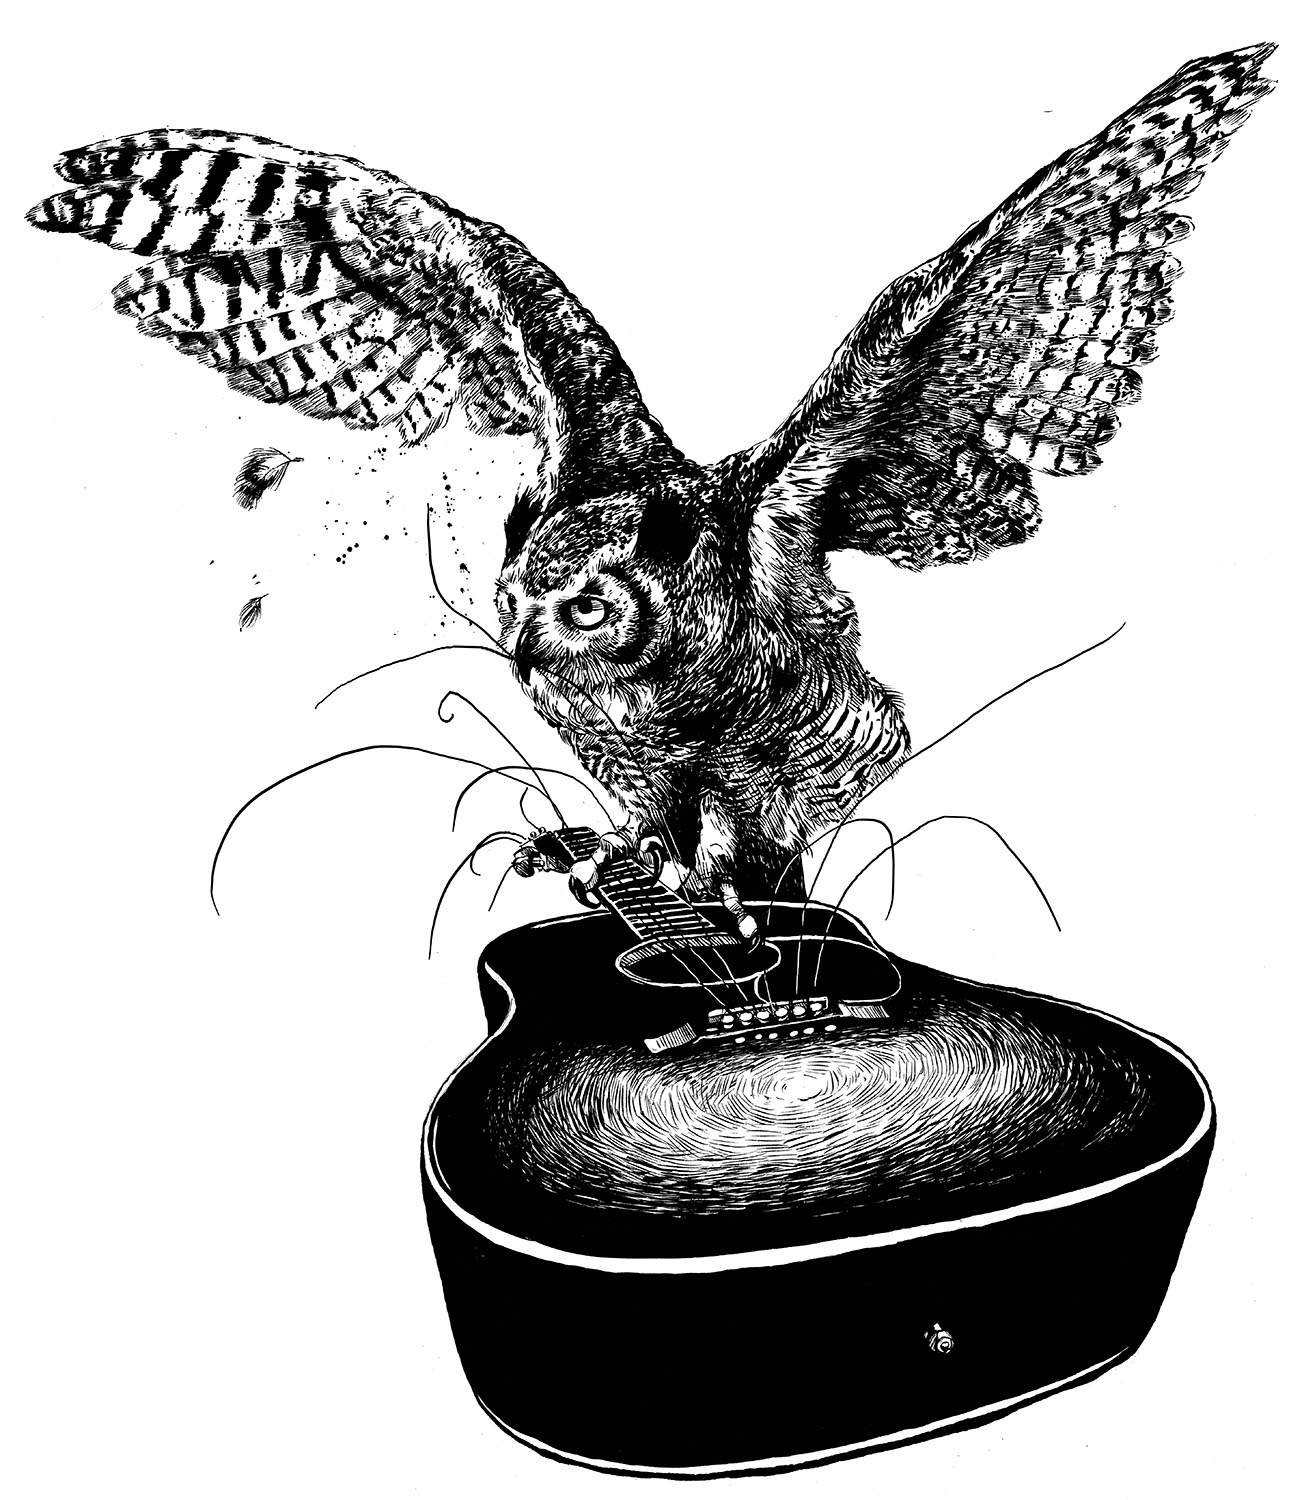 Great-Horned Owl with Acoustic Guitar for Corey Shields Album Artwork, 2017